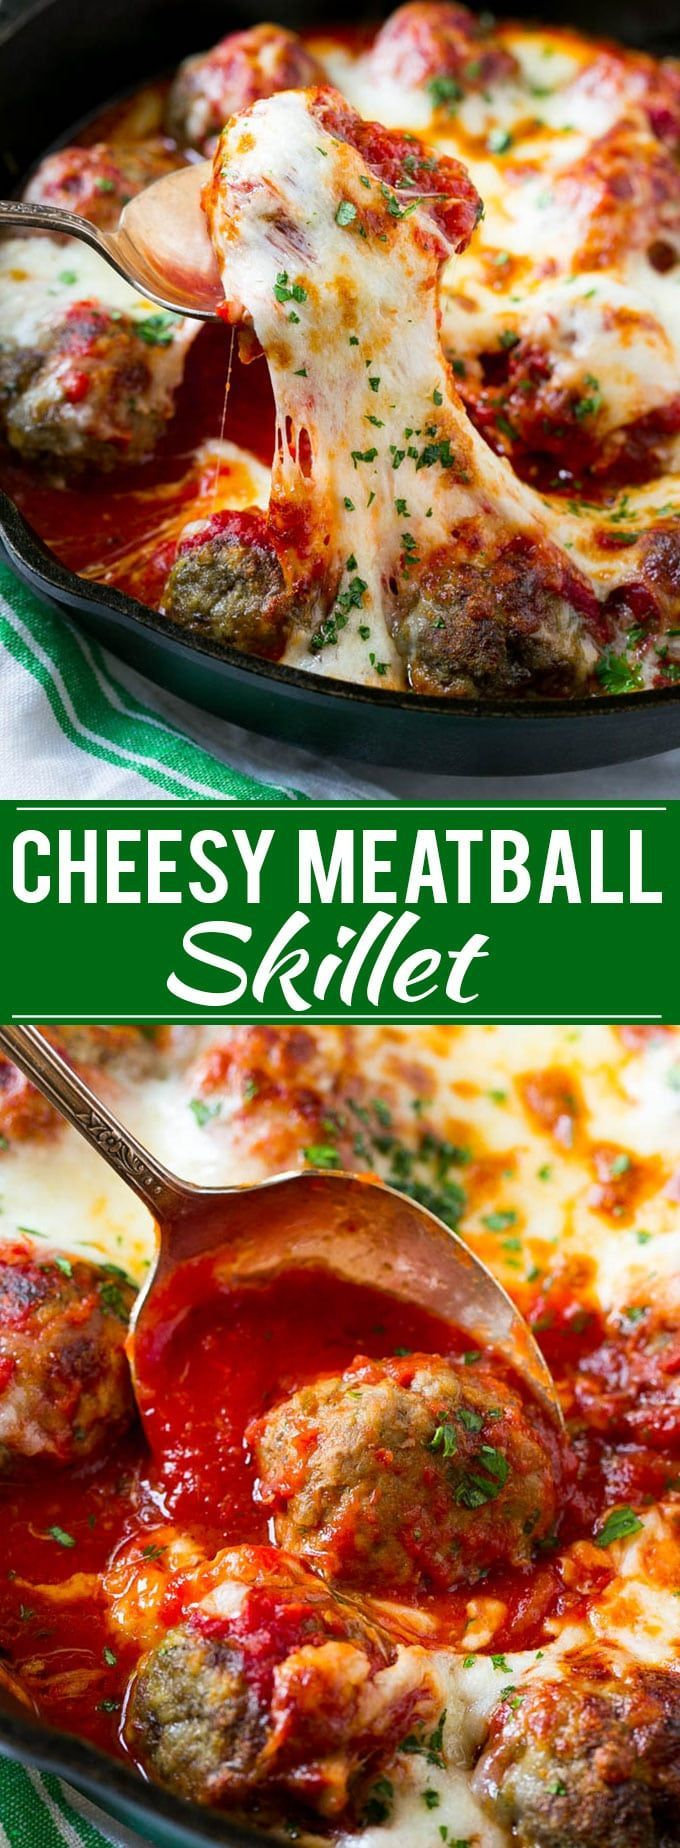 Keto it! Cheesy Meatball Bake Recipe | Meatball Skillet | Italian Meatballs | Baked Meatball Recipe